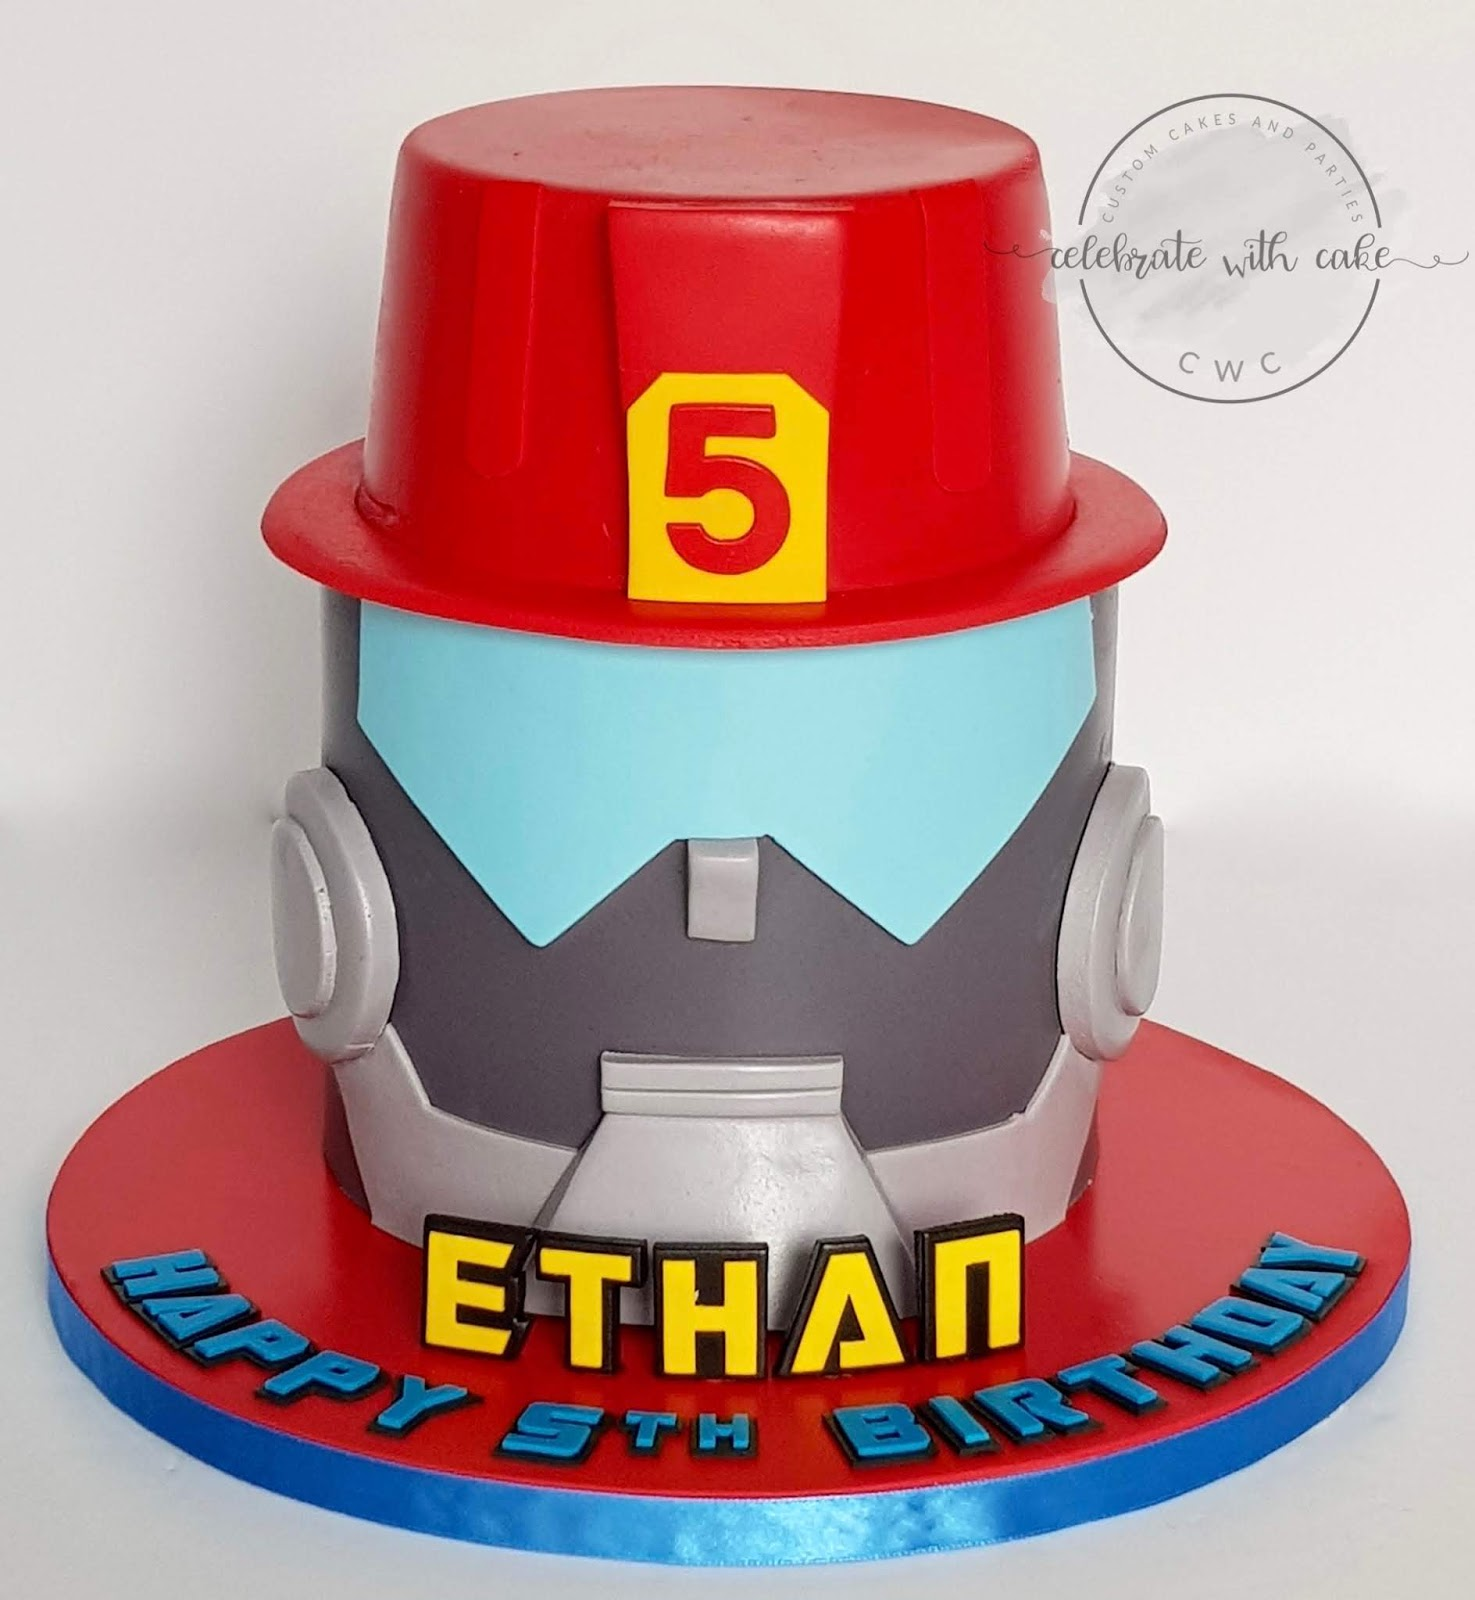 Groovy Celebrate With Cake Rescue Bot Featuring Heatwave Single Tier Cake Funny Birthday Cards Online Alyptdamsfinfo